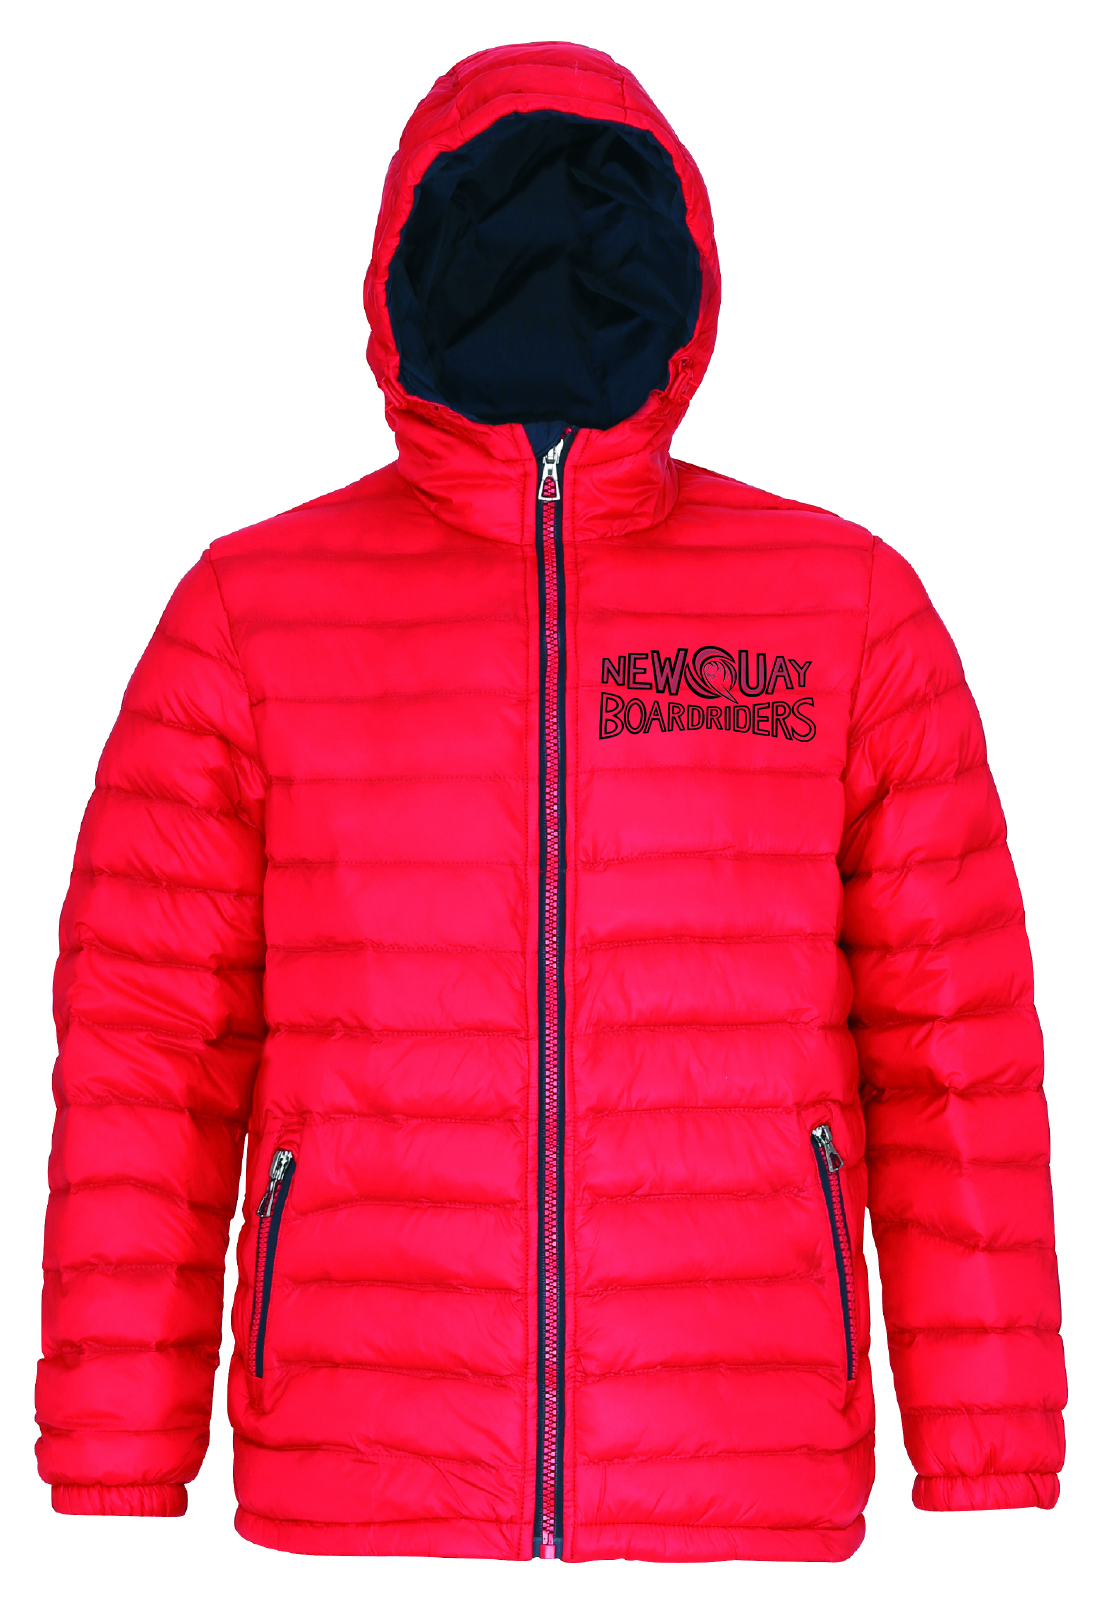 Newquay Boardriders Snowbird Jacket